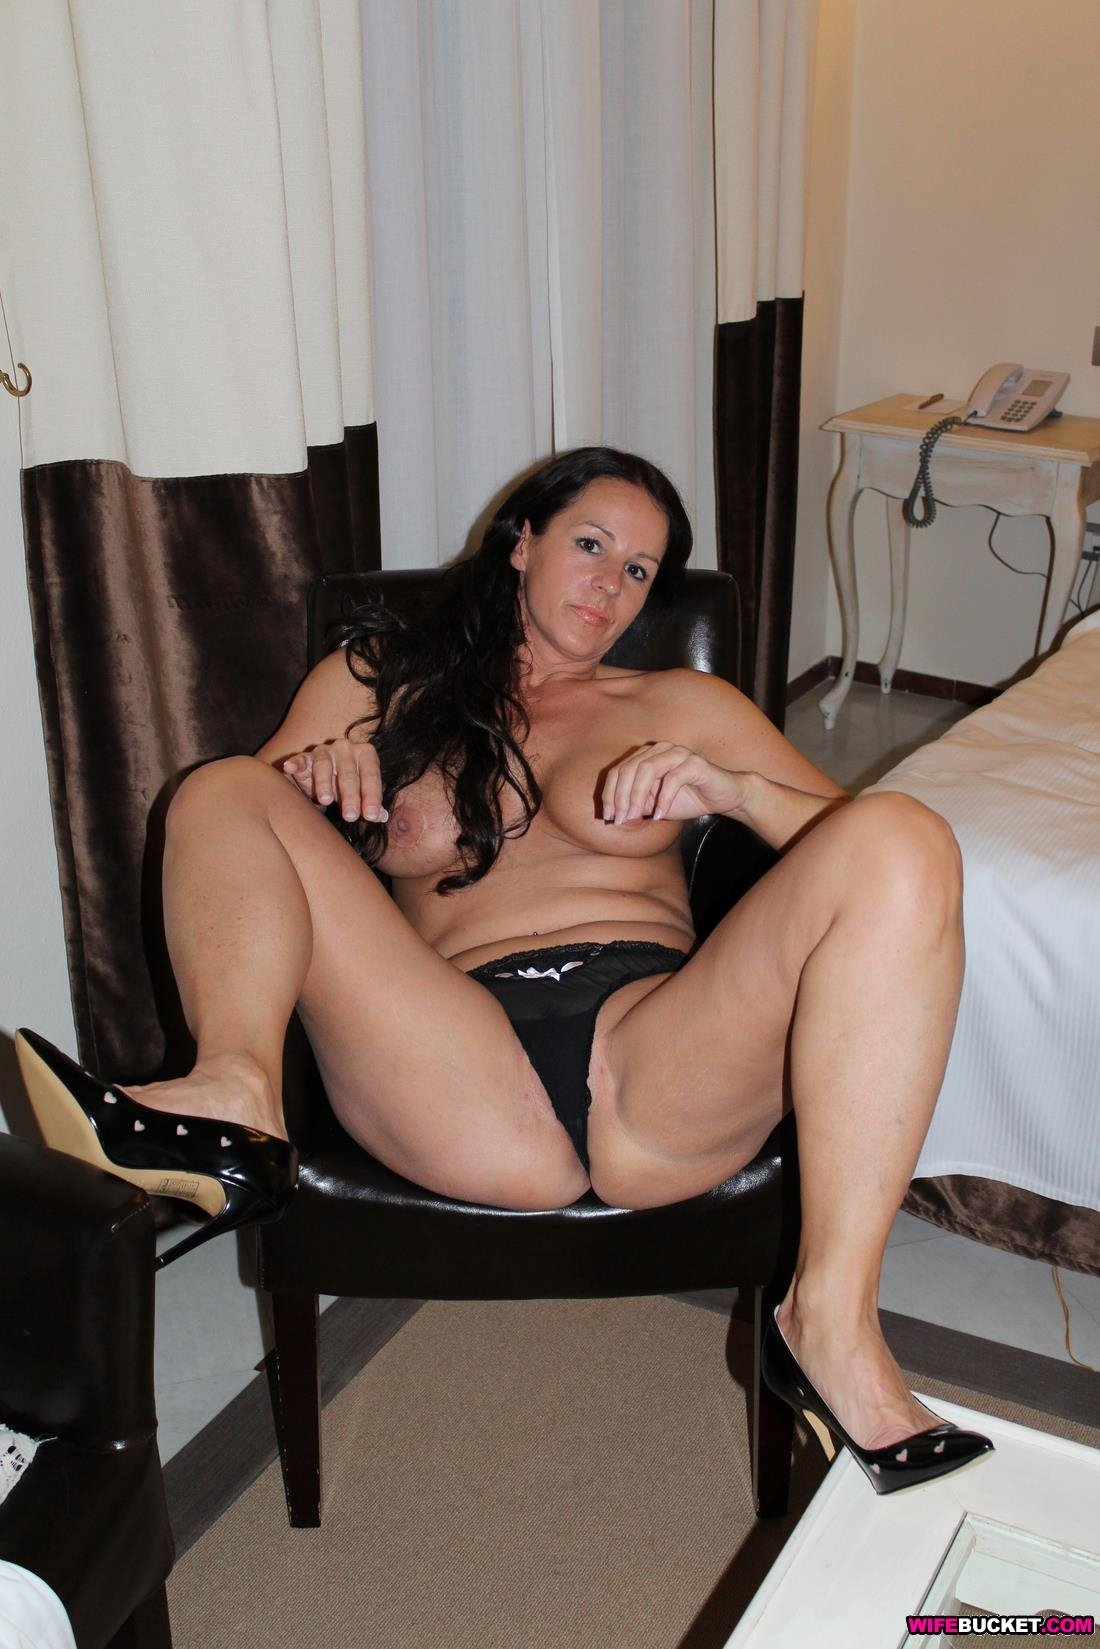 Free chat rooms for adults